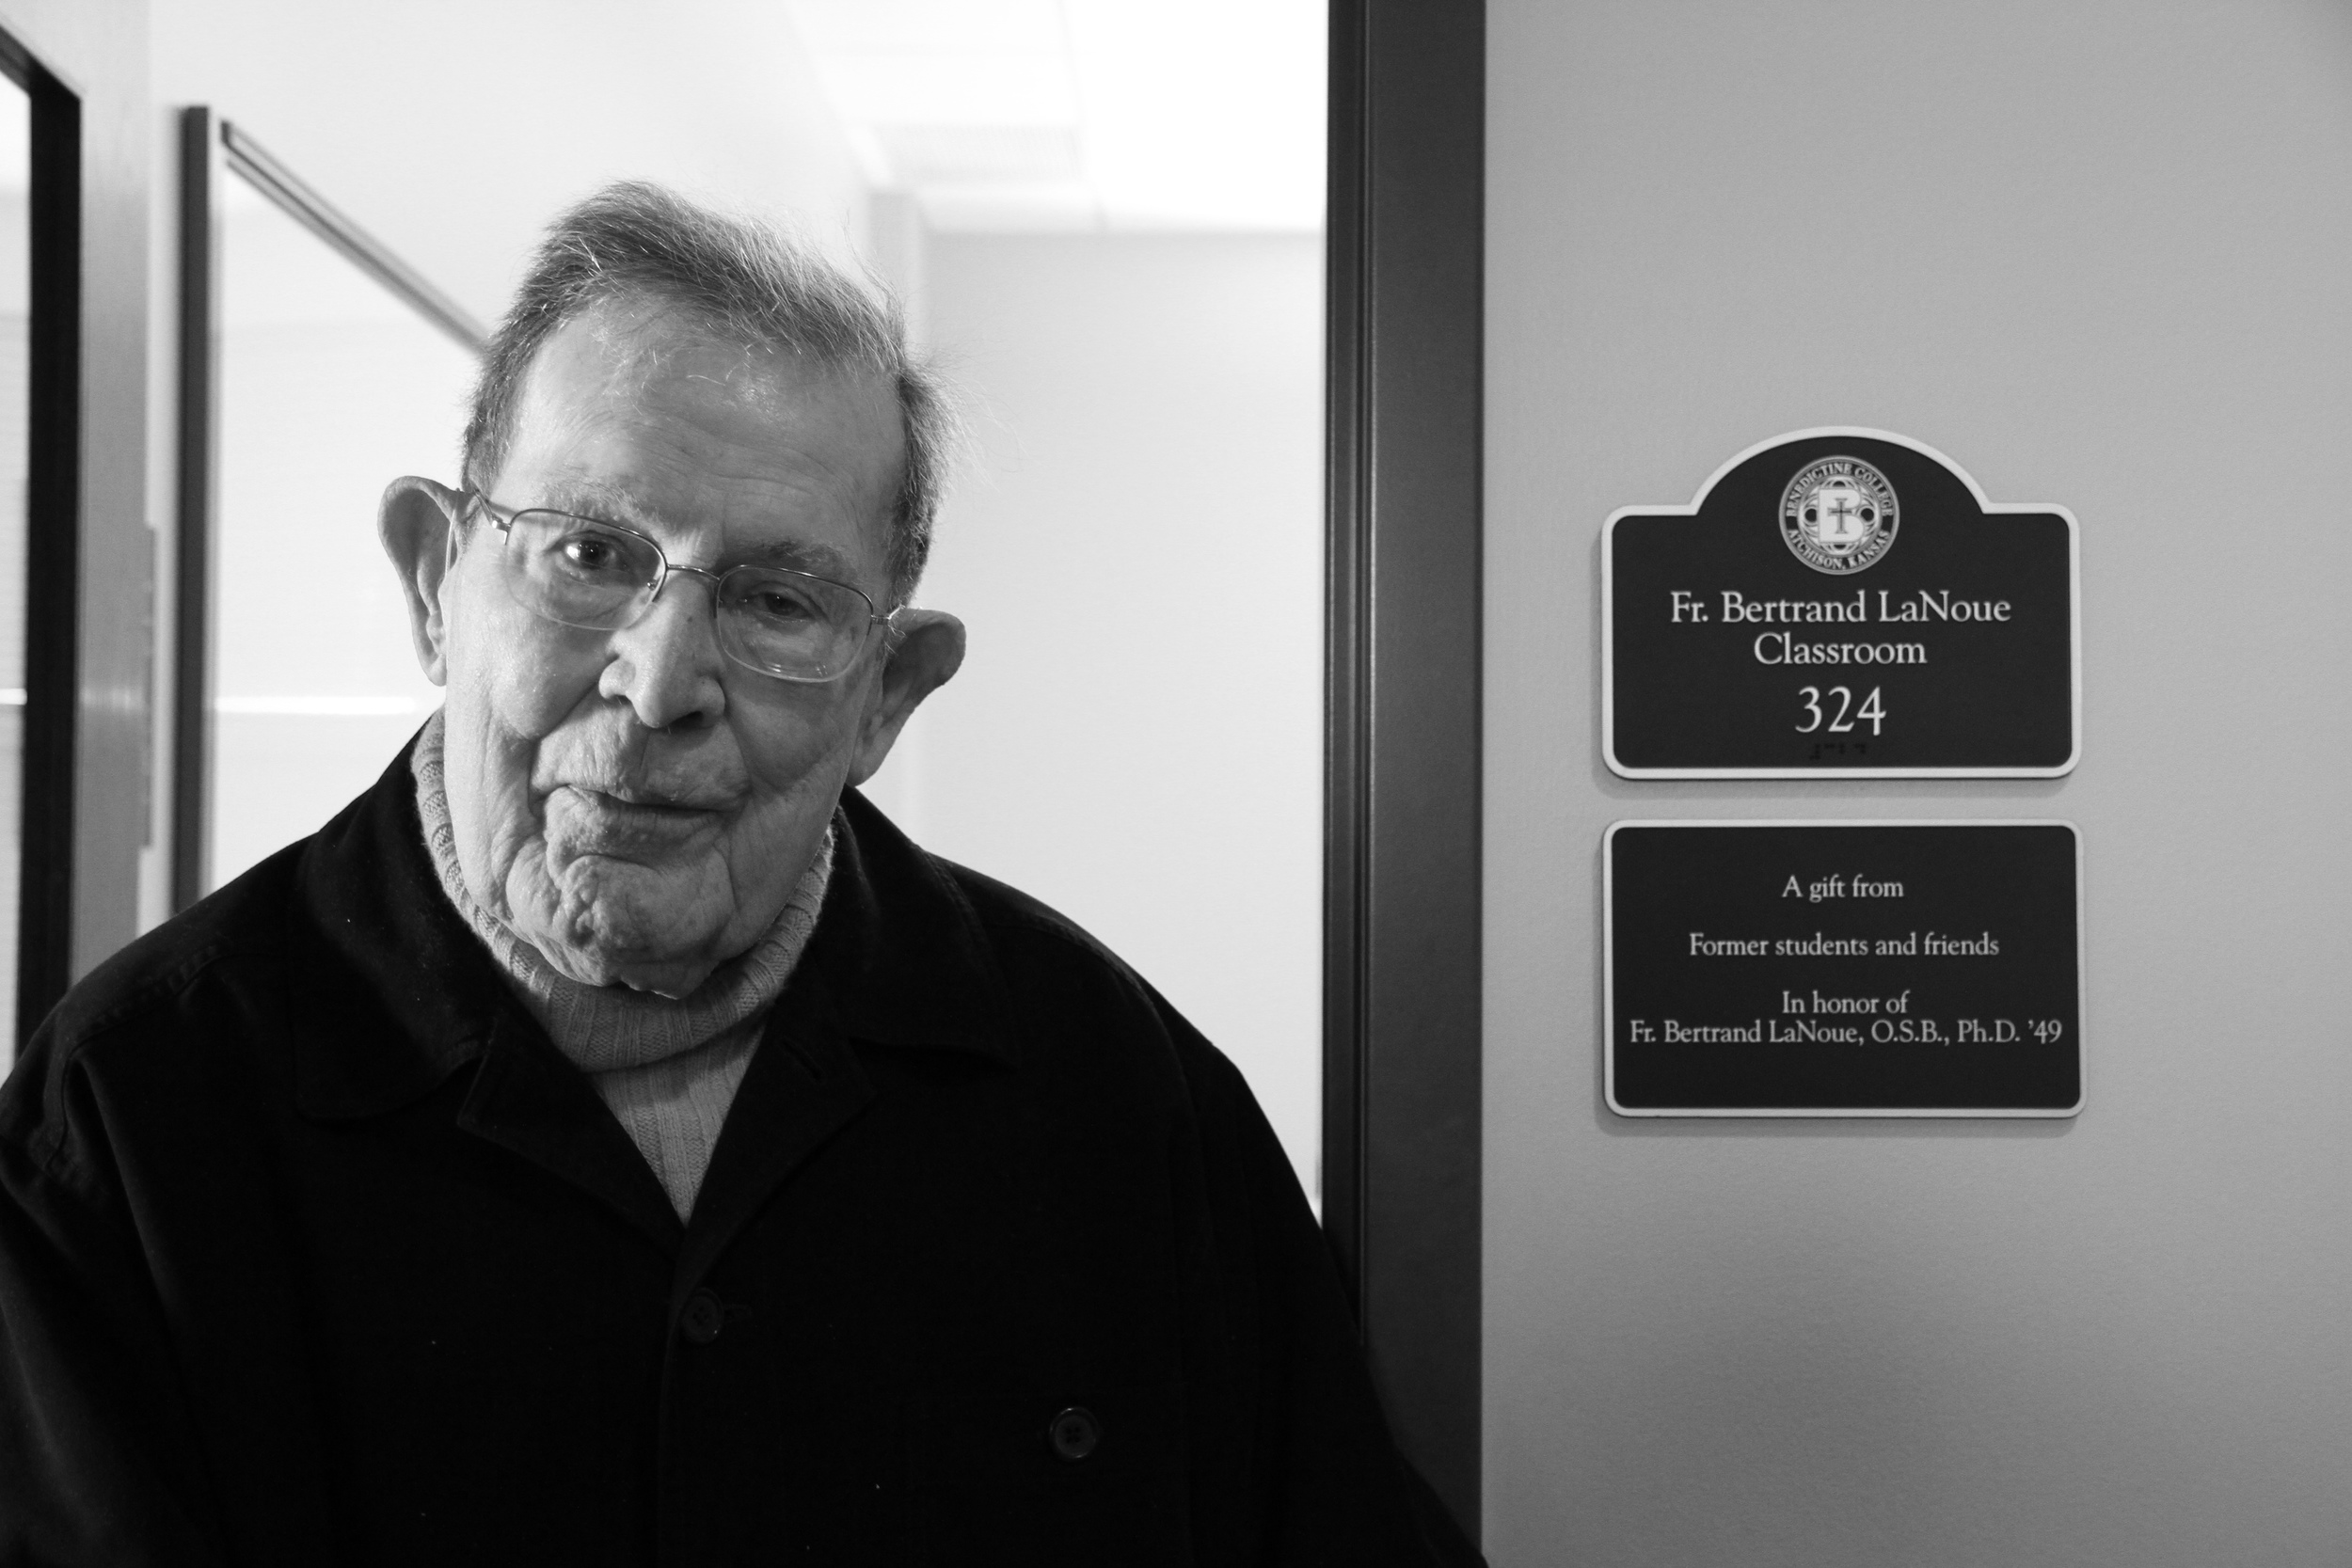 Fr. Bertrand service to St. Benedict's and Benedictine College was celebrated in 2012 with the naming of a classroom in his honor.